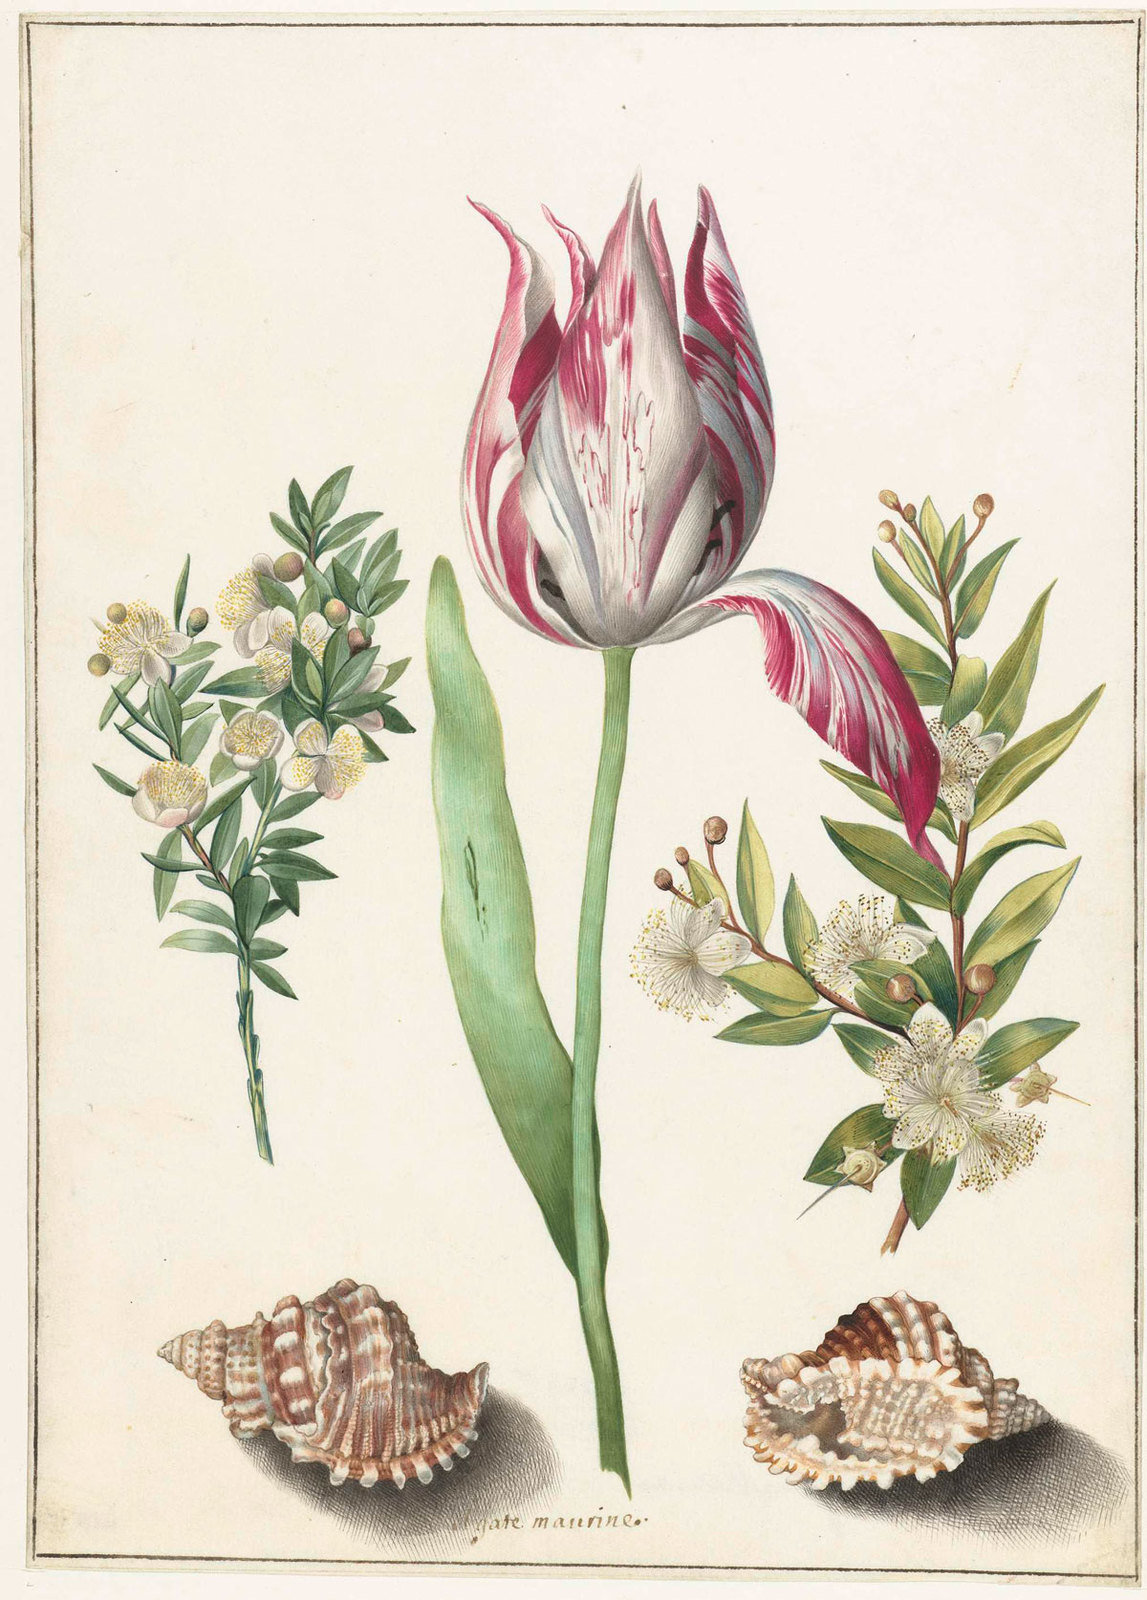 Tulip, two branches of myrtle and two shells, ca. 1700, Maria Sibylla Merian (attributed to), Rijksmuseum, Public Domain Mark